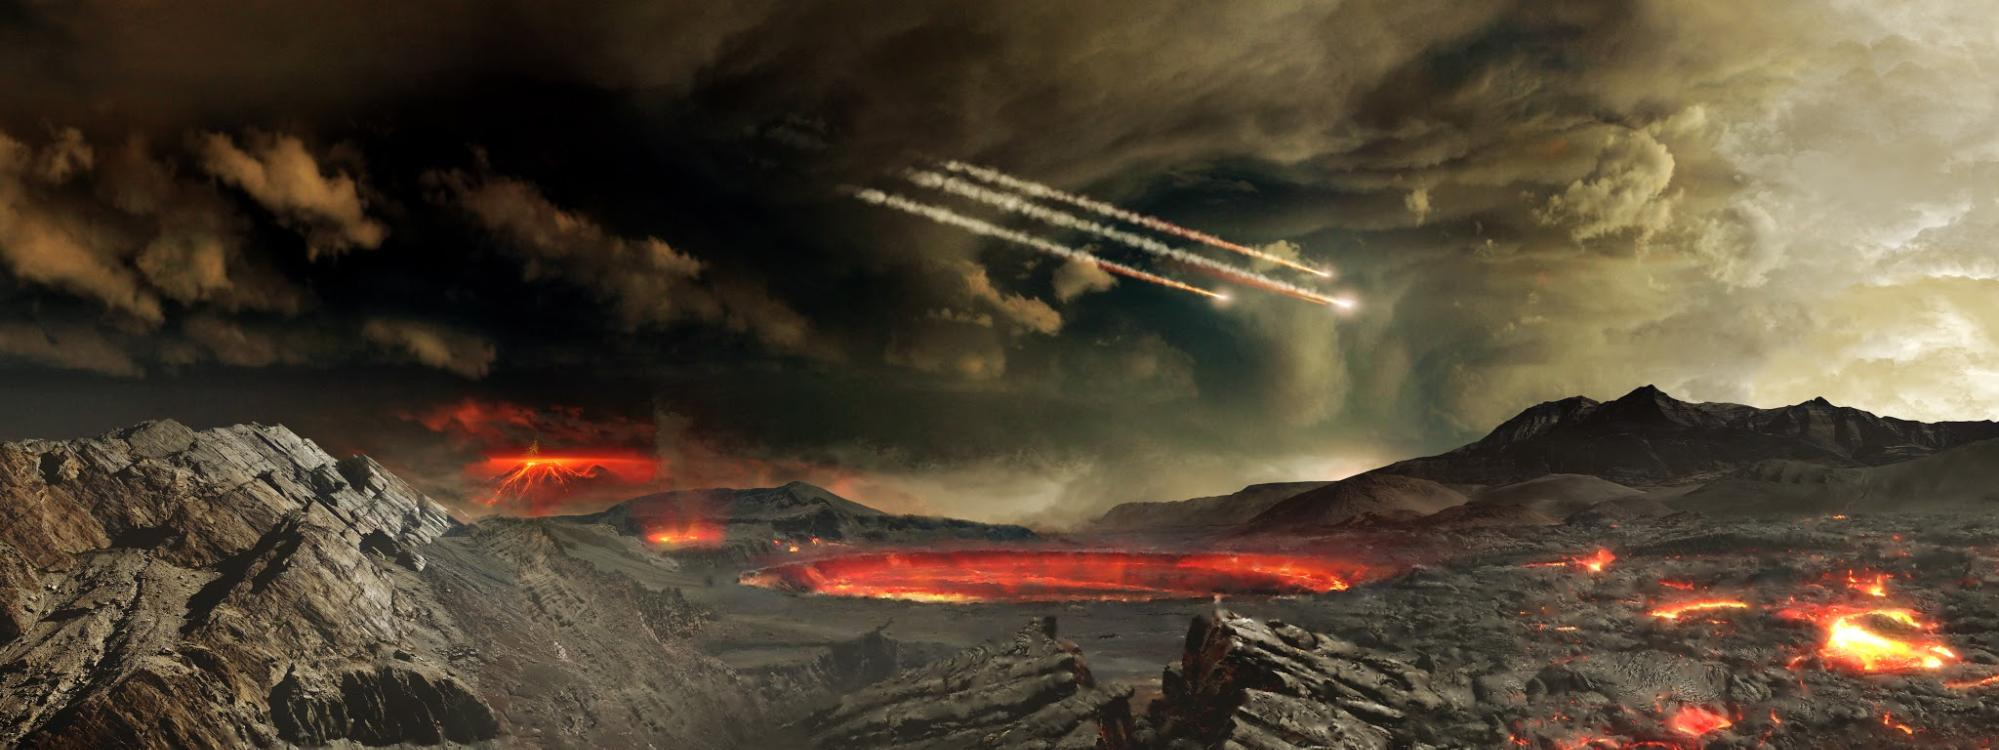 How Did Earth's Earliest Terraformers Survive? They Hid Under Rocks